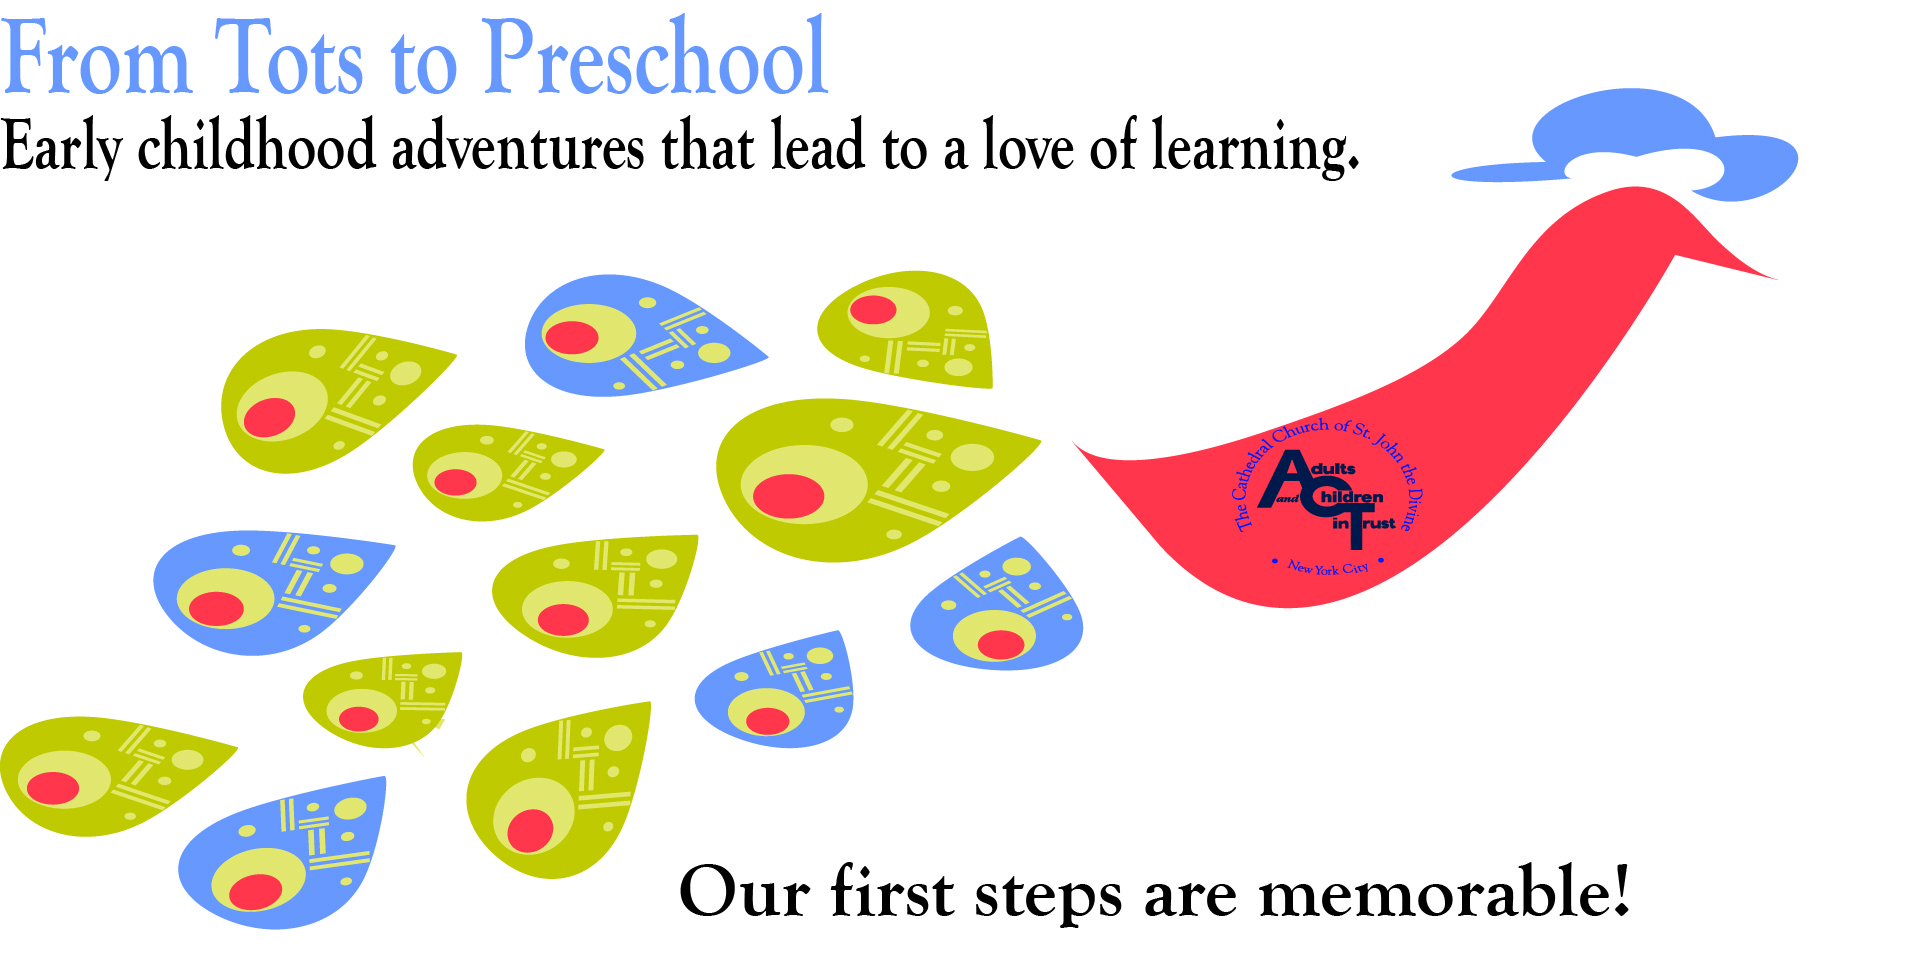 A.C.T. Nursery and Preschool